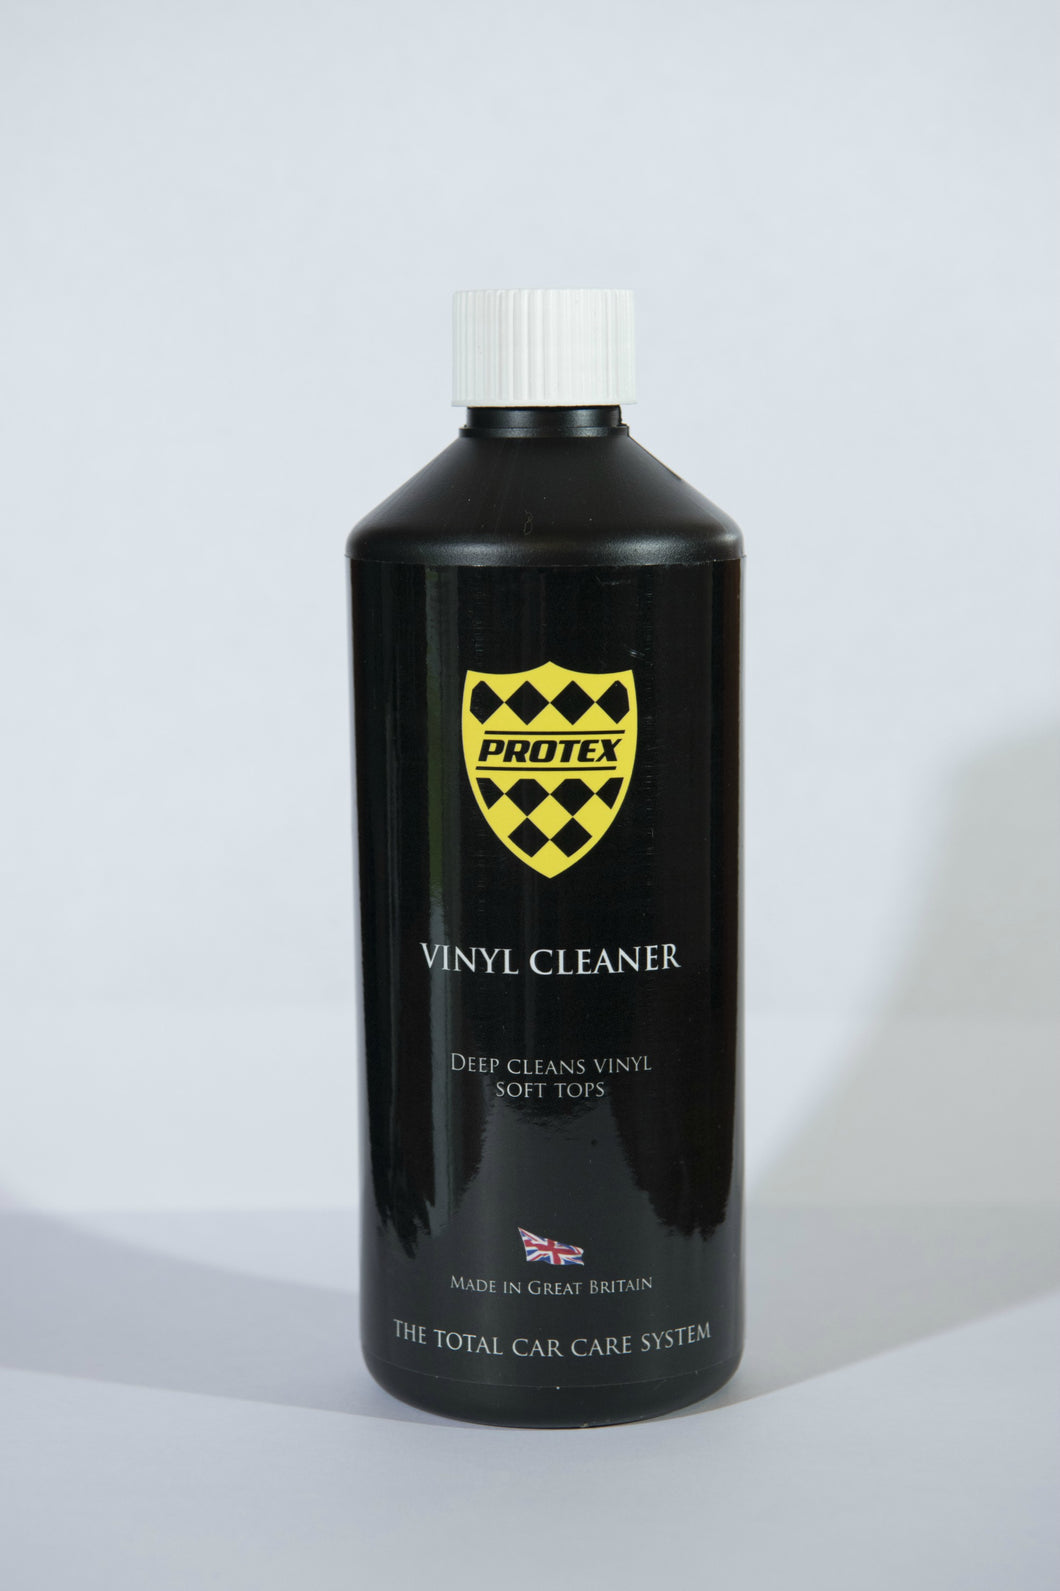 Protex Vinyl Cleaner 1Ltr.